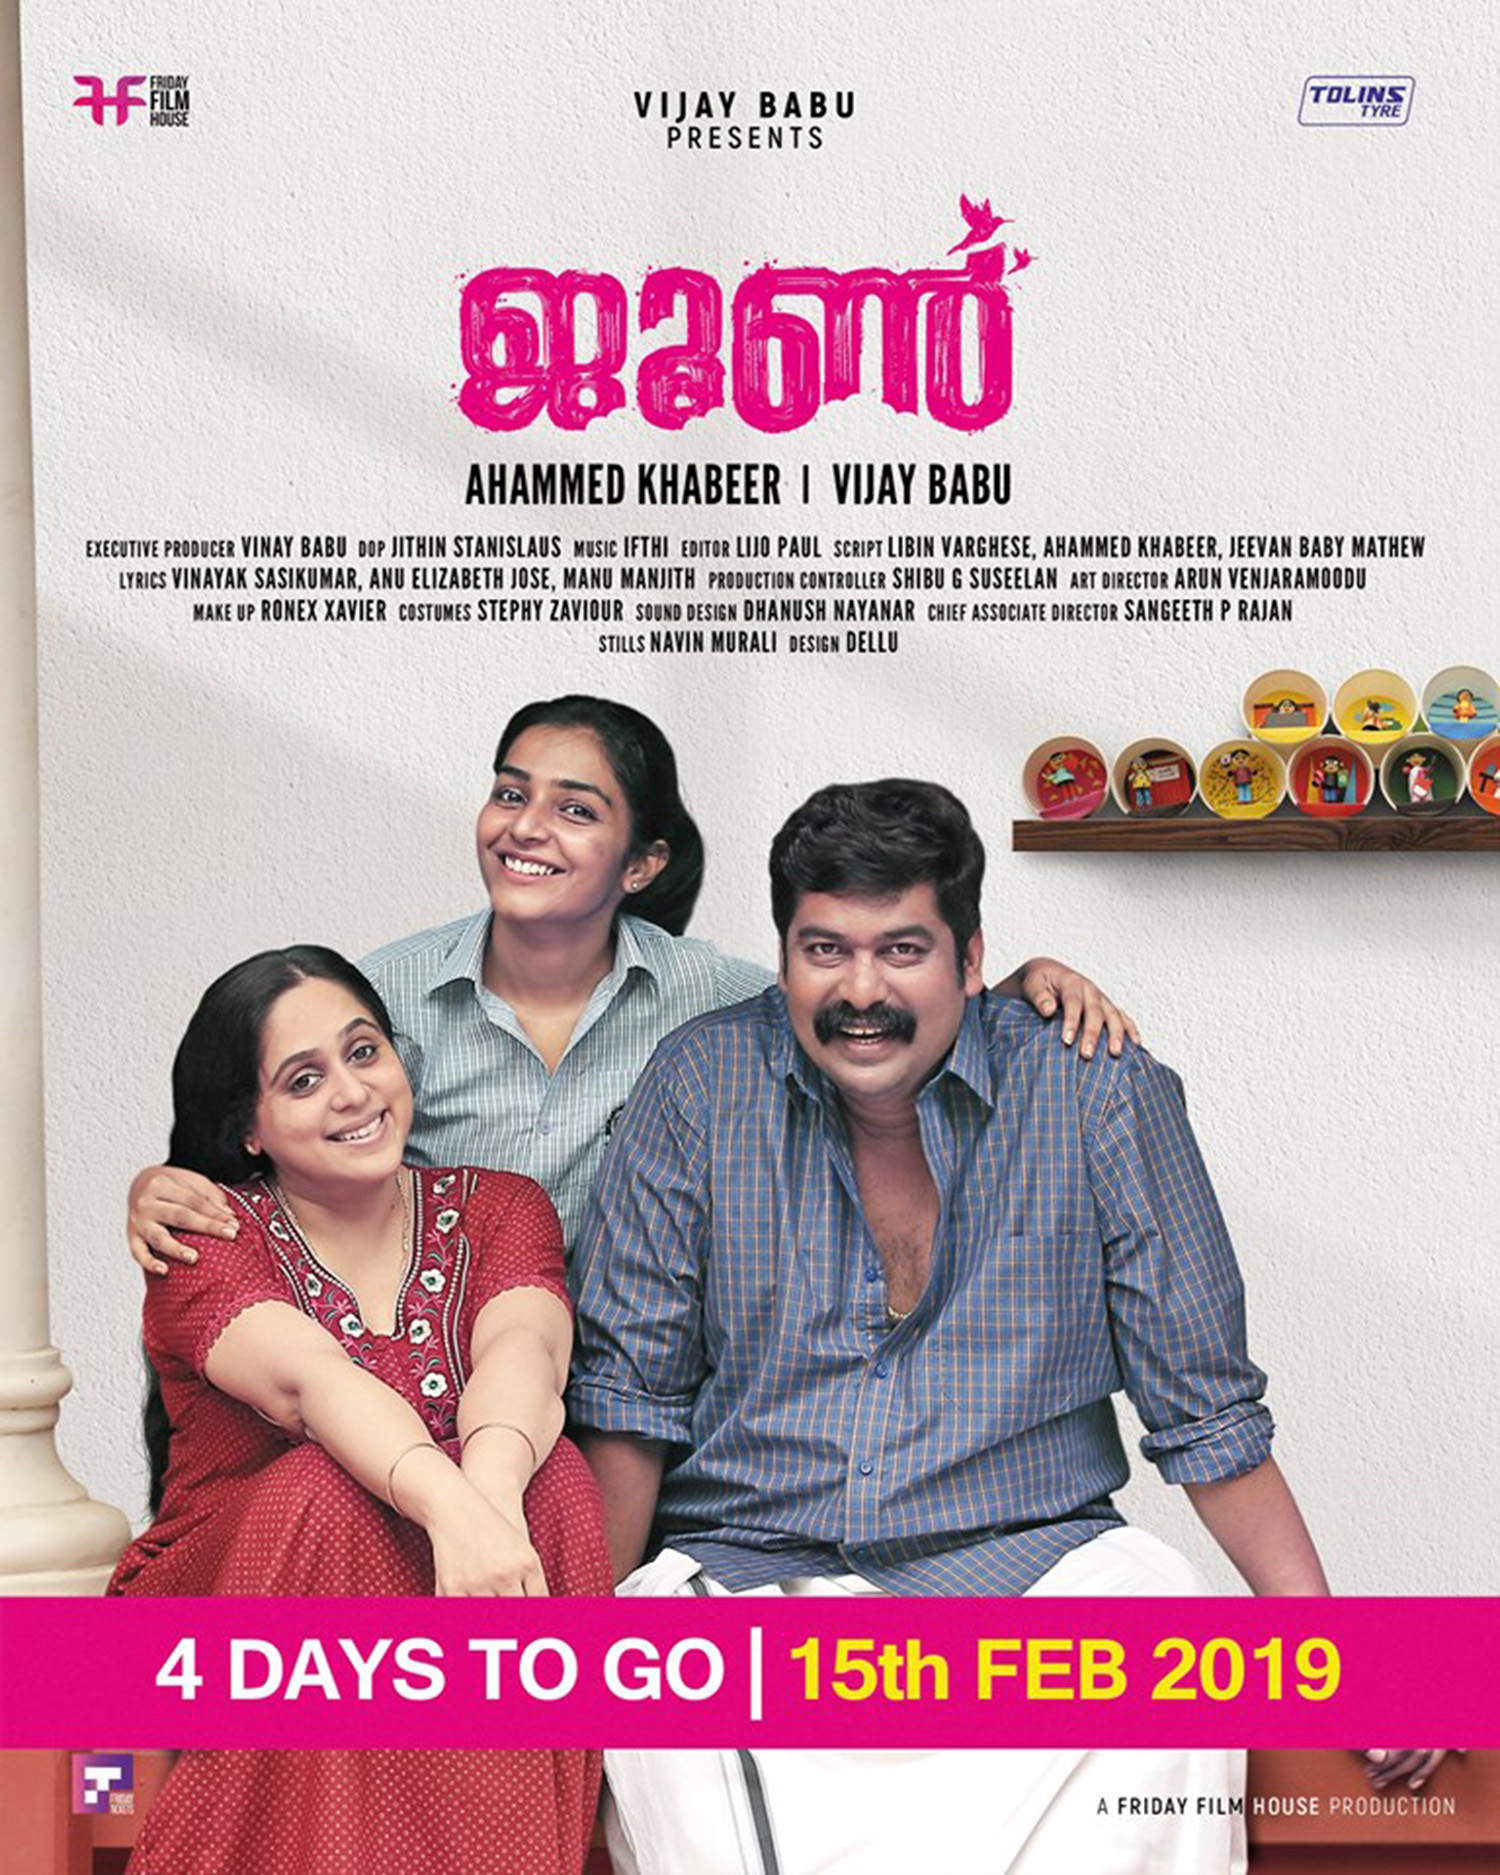 june review,june movie review,june malayalam movie review,june poster,june movie poster,june movie stills photos,june movie hit or flop,june movie kerala box office report,actress rajisha vijayan,rajisha vijayan's june review,rajisha vijayan's new movie,rajisha vijayan in june,joju george,Ifthi,Ahammed Khabeer